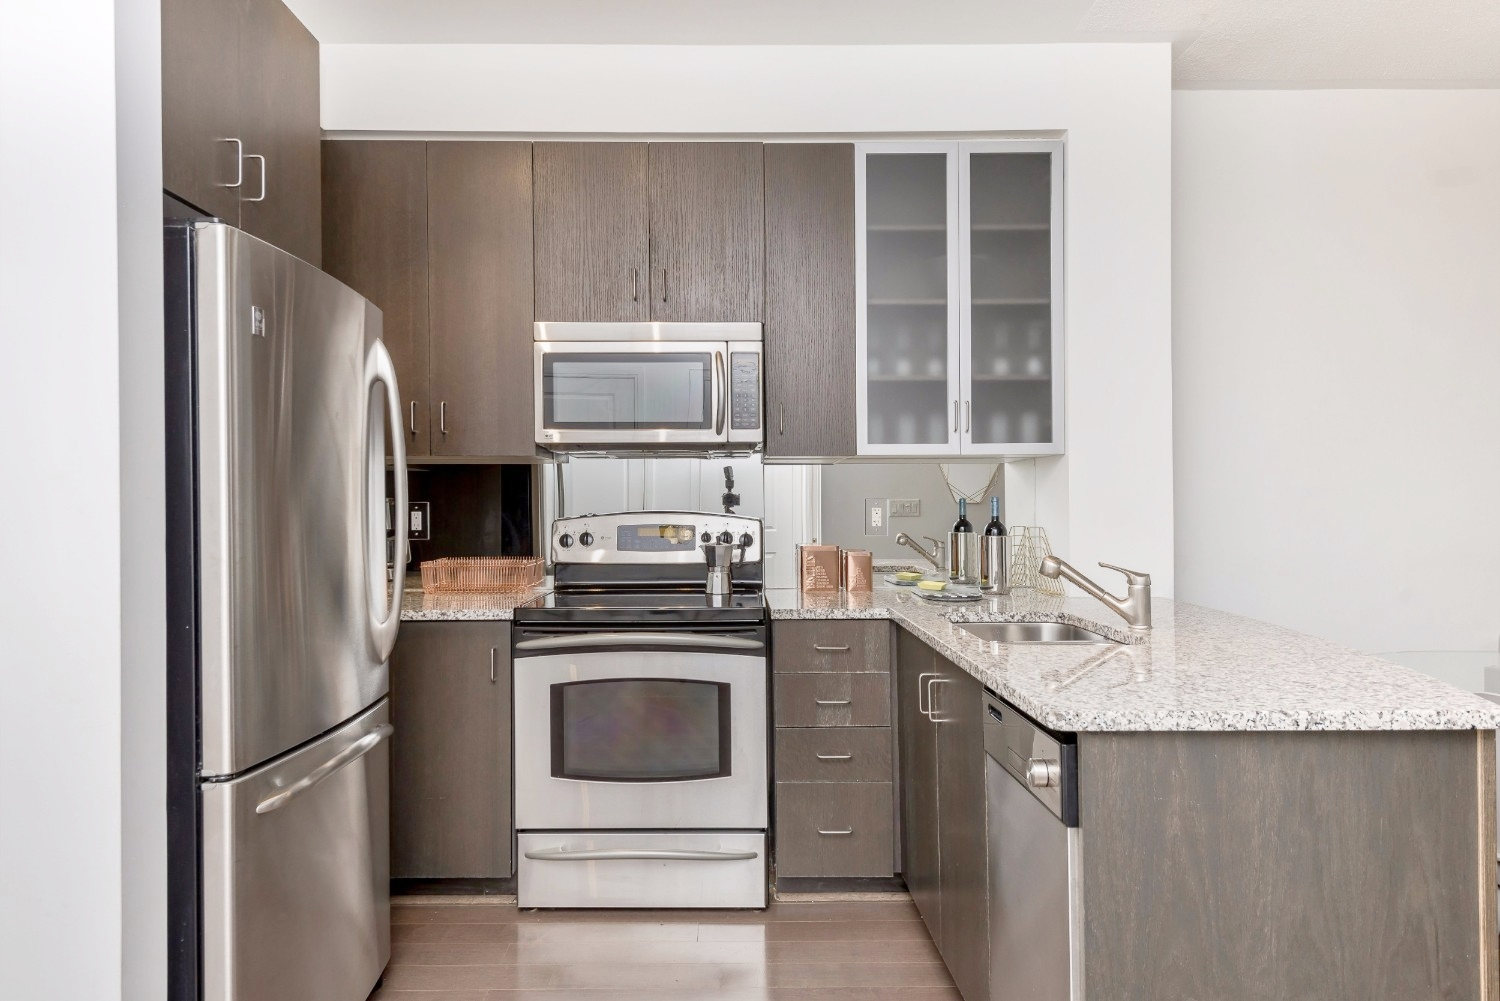 Copy of Copy of Copy of Copy of Copy of Yorkville Grand Condo - Kitchen, Modern Appliances